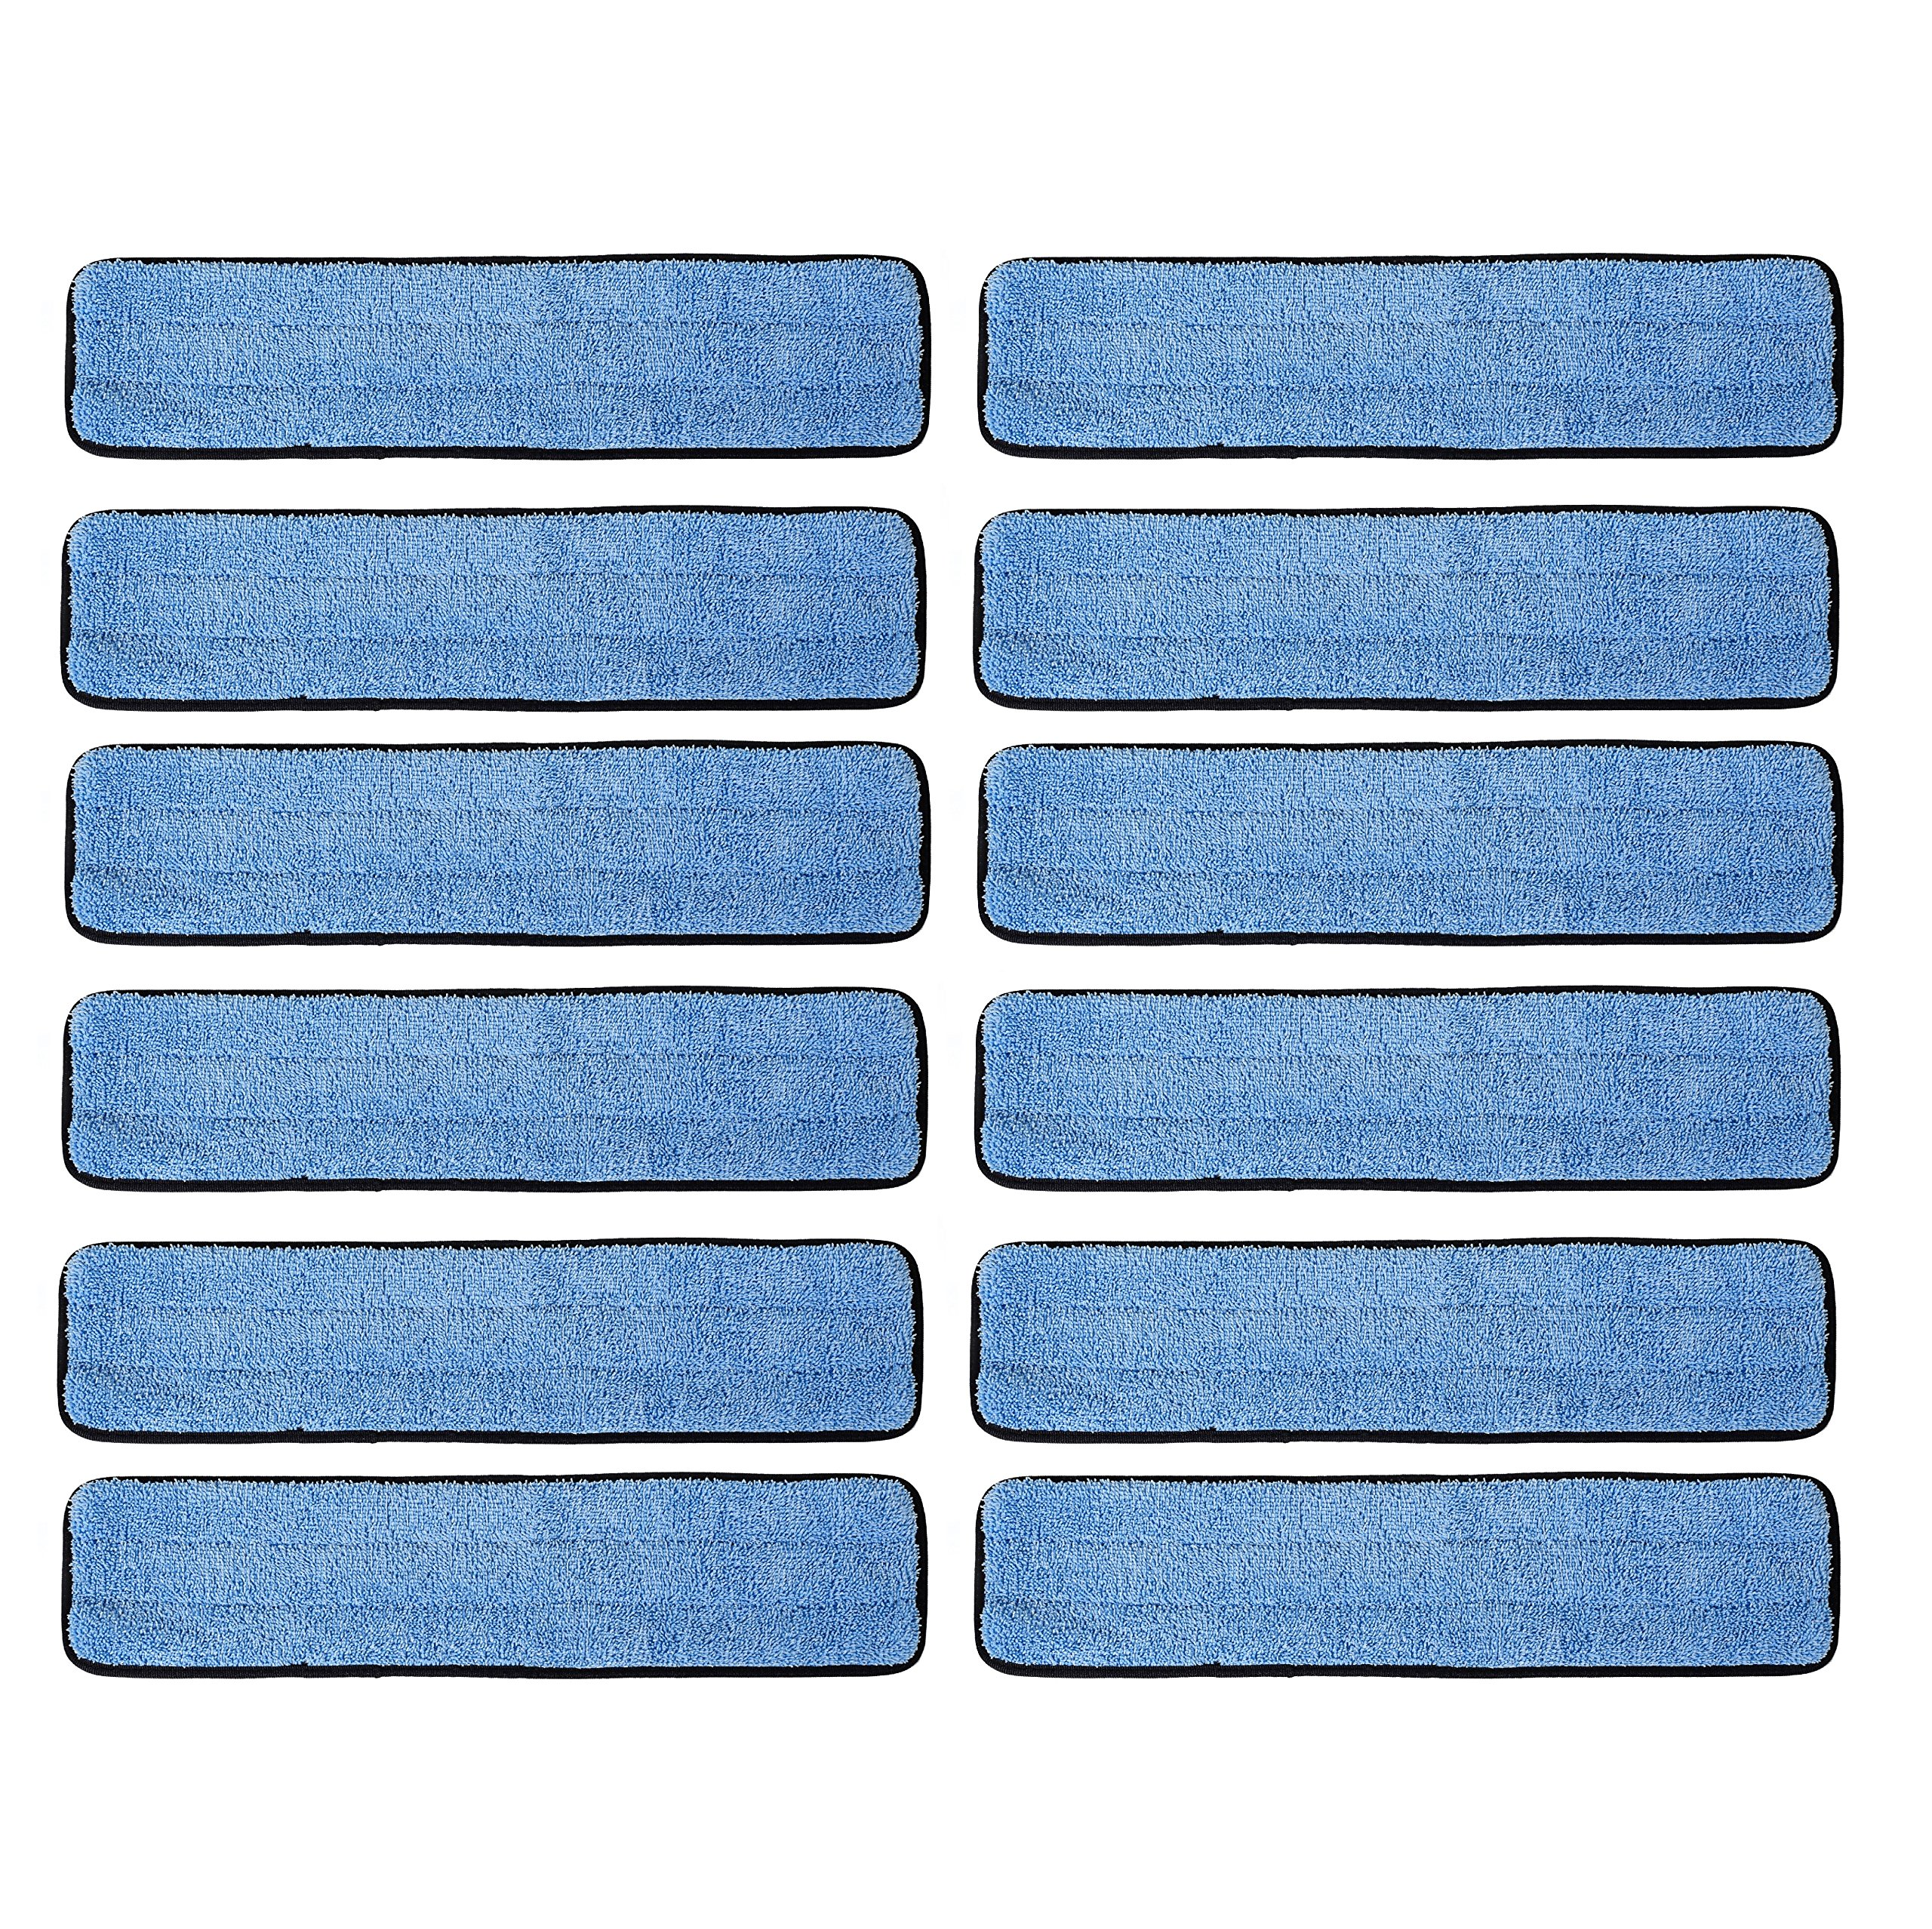 Real Clean 18 inch Microfiber Wet Mop Refill Pads for Flat Microfiber Mop Frames (Pack of 12) by Real Clean